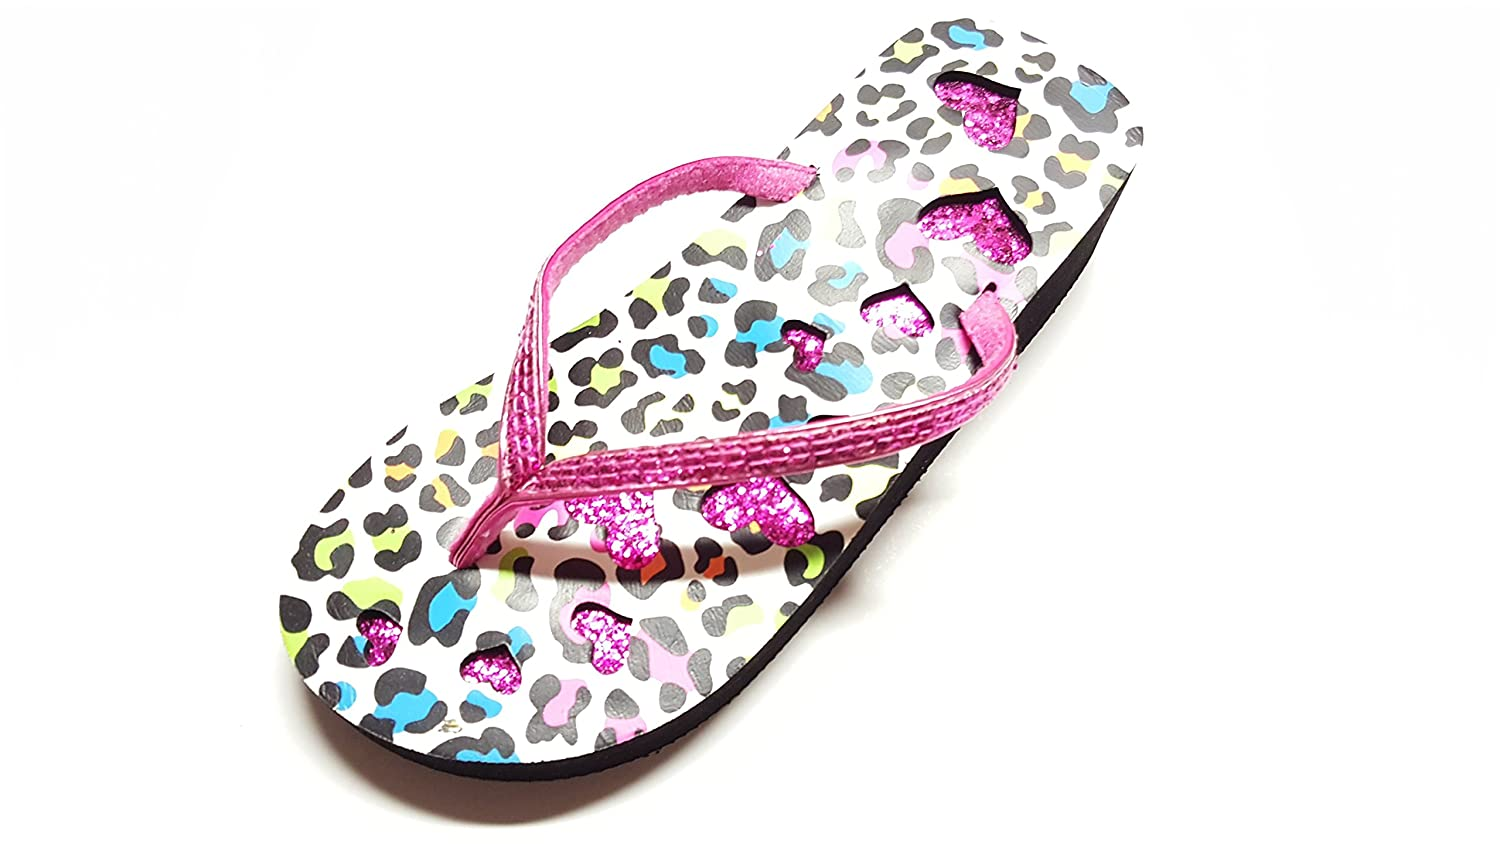 Epic Step Animal Print Footbed with Heart Shapes